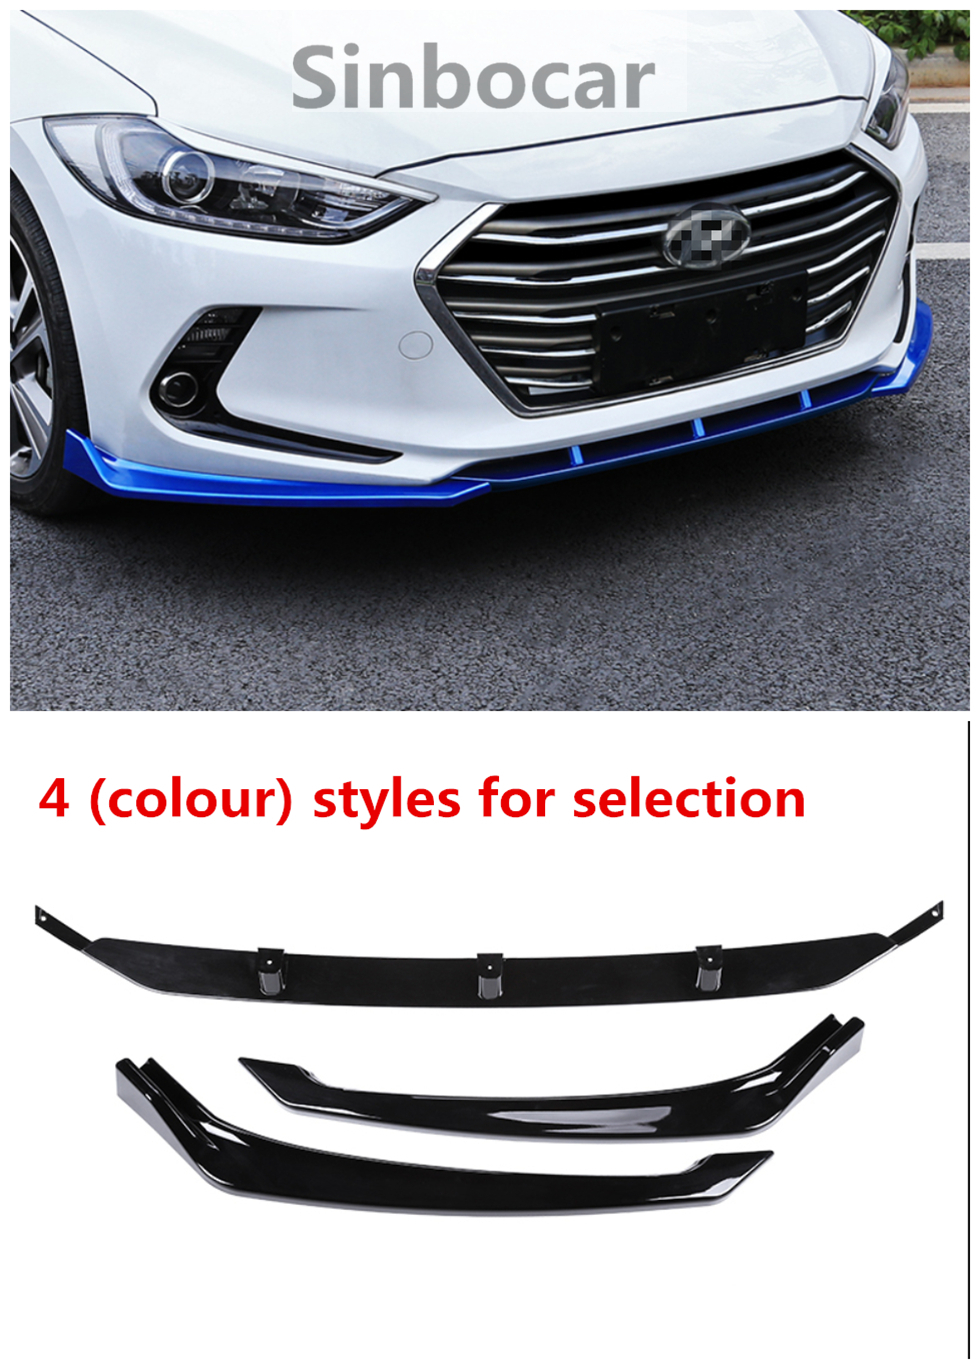 For Hyundai Elantra 2017-2018 ABS BLACK Front Bumper Cover Trim Molding 3PCS